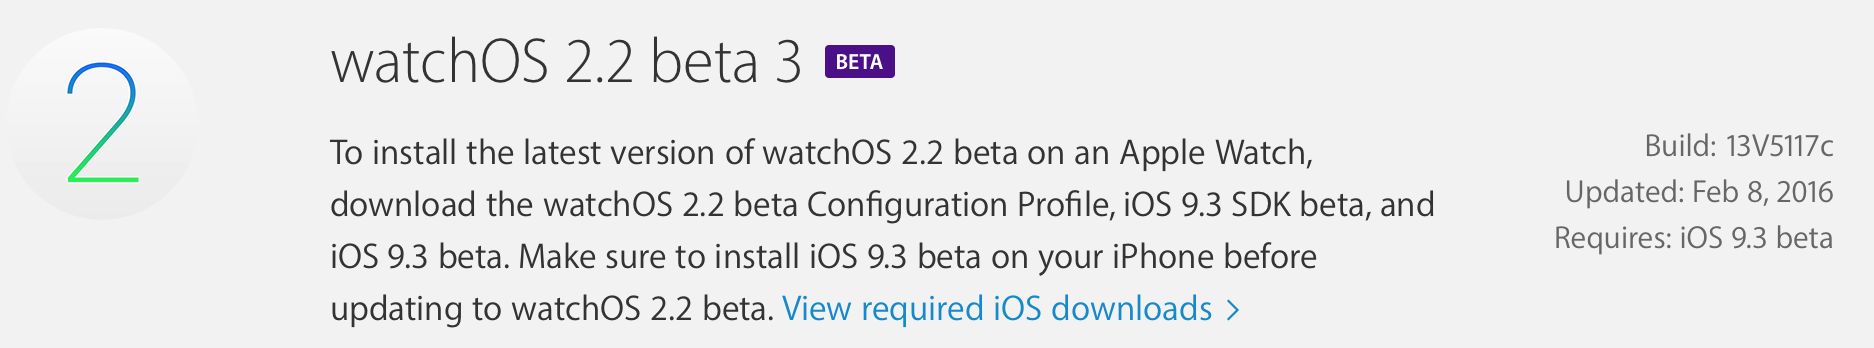 watchOS-Beta-Versionen-bildschirmfoto-2016-02-08-um-19.10.35.png